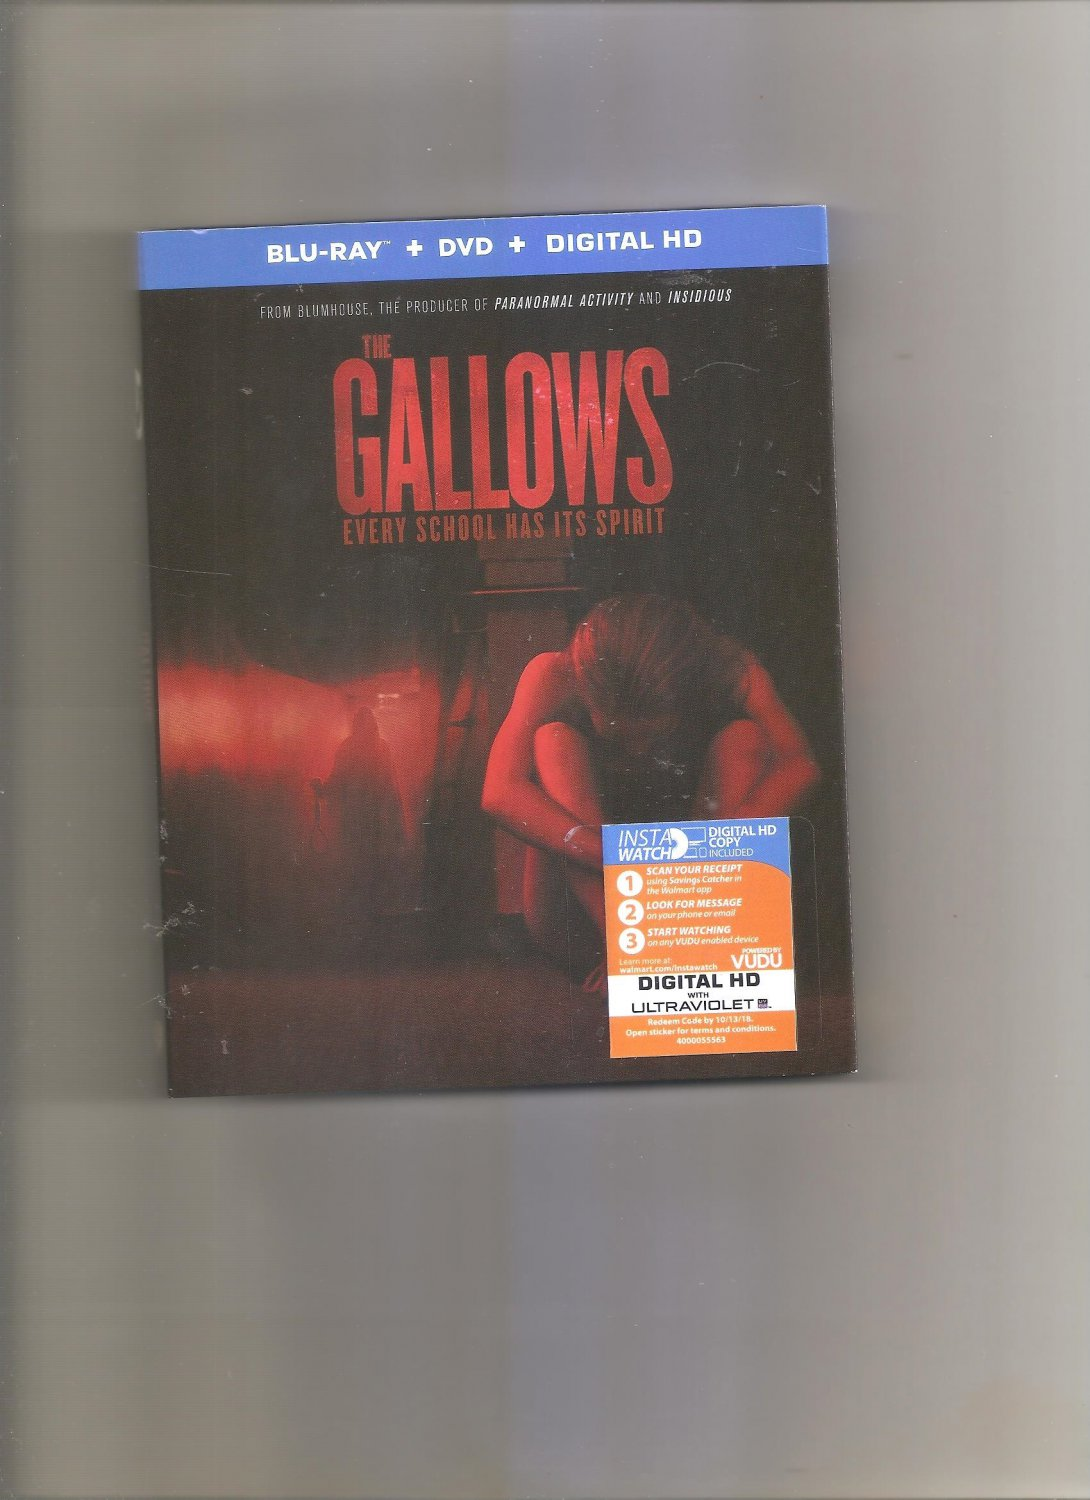 The Gallows Every School Has It's Spirit Blu-Ray Dvd Digital HD